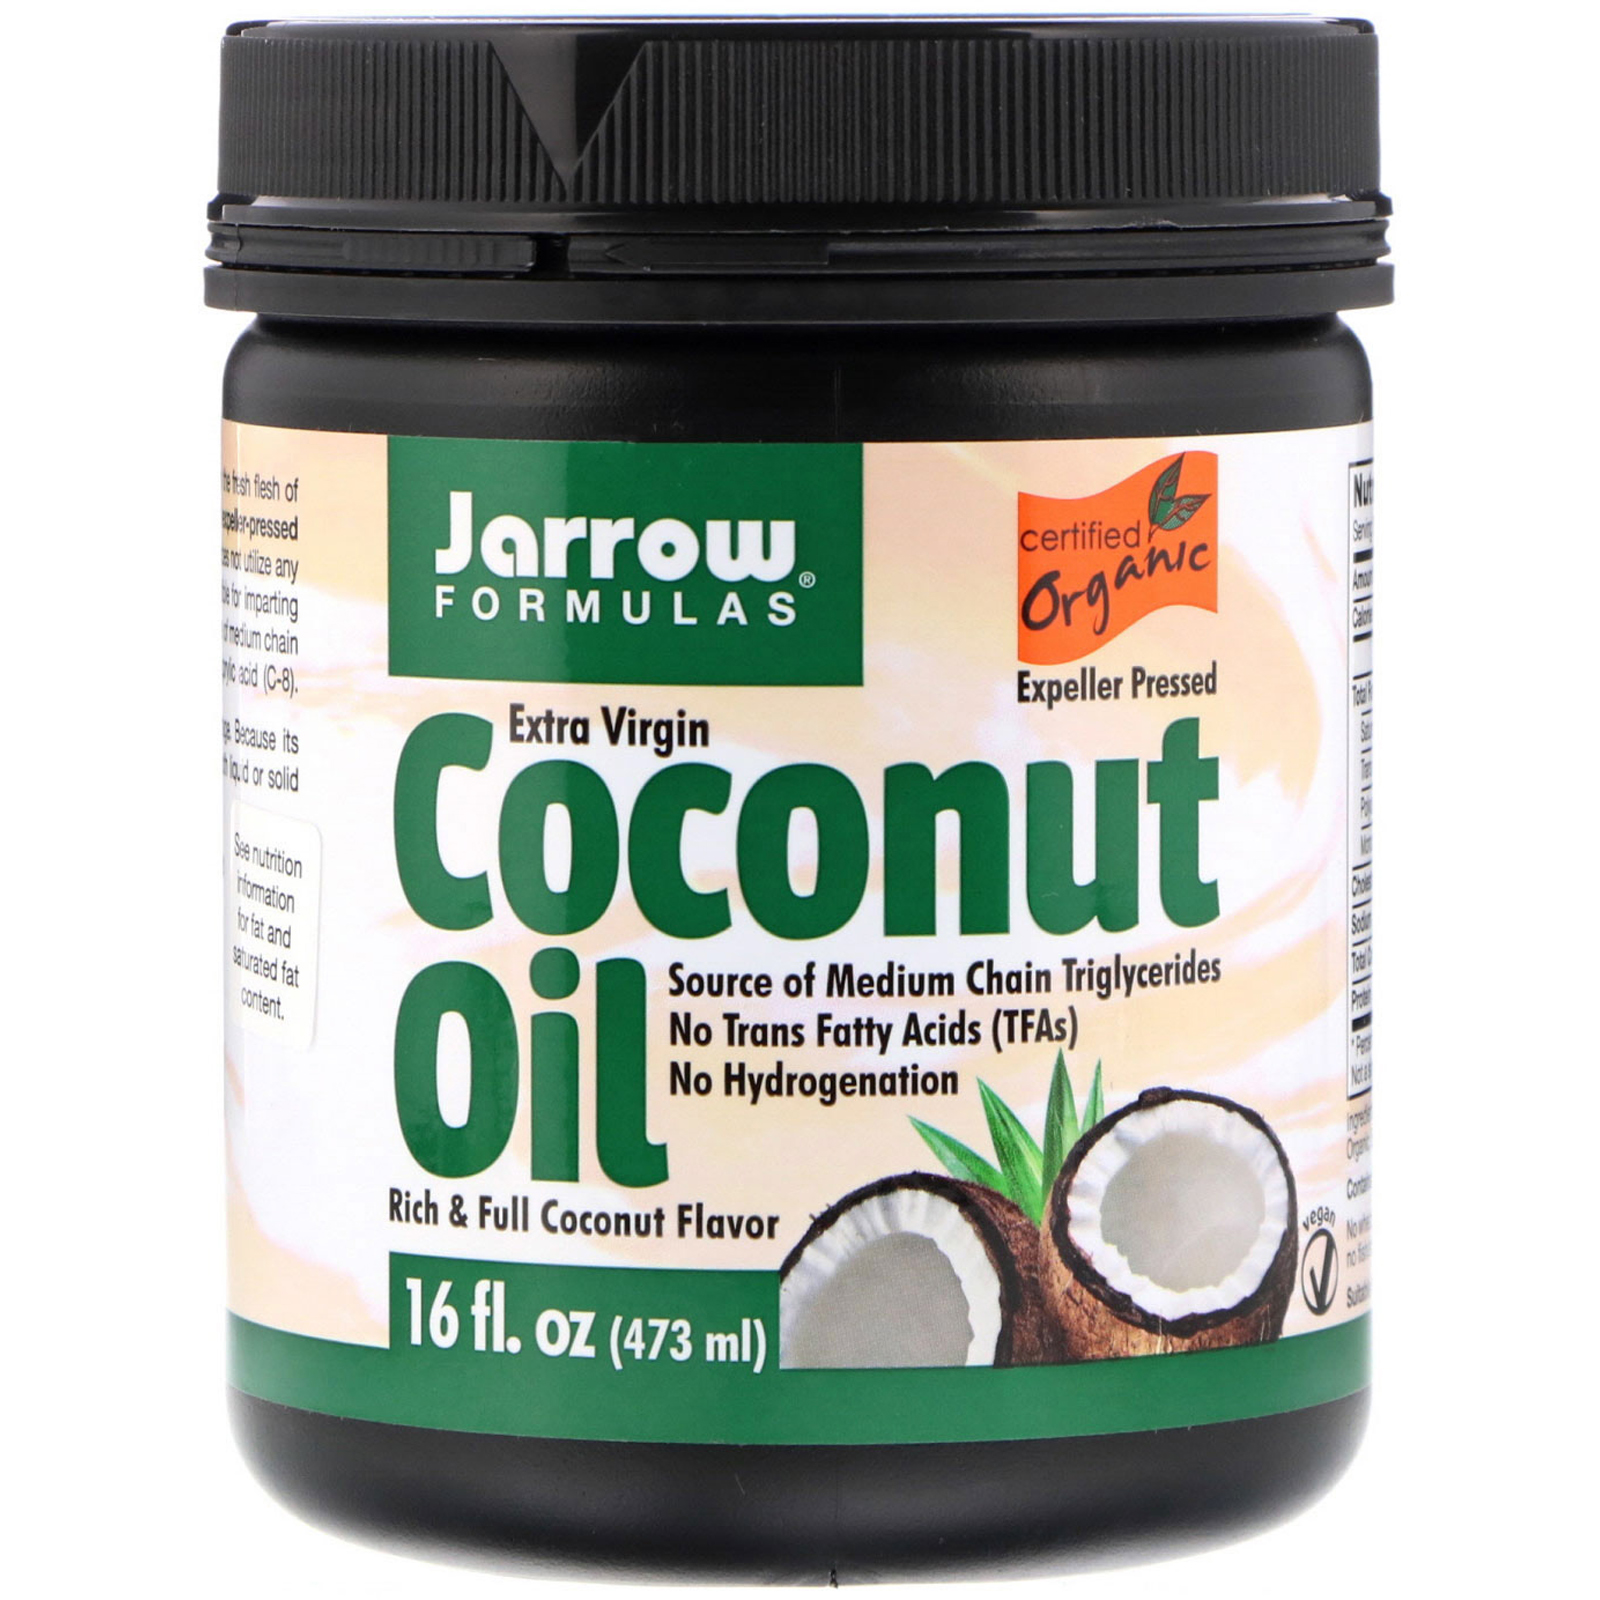 Extra Virgin Coconut Oil (473 g)